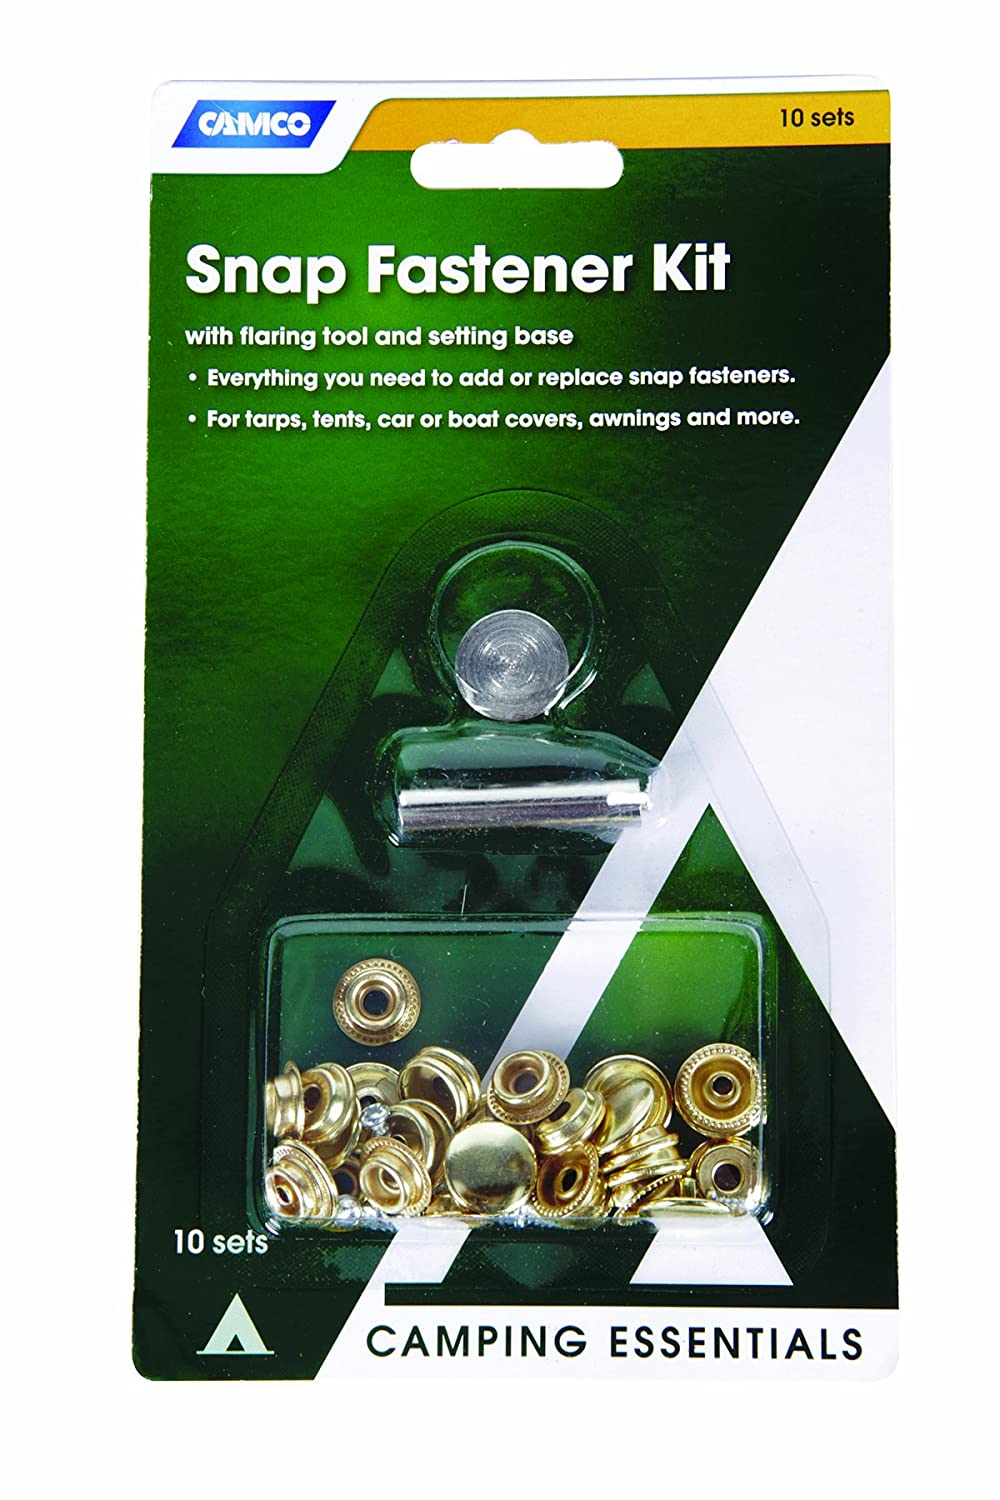 10 pack Camco 51006 Snap Fastener Kit with Flaring Tool